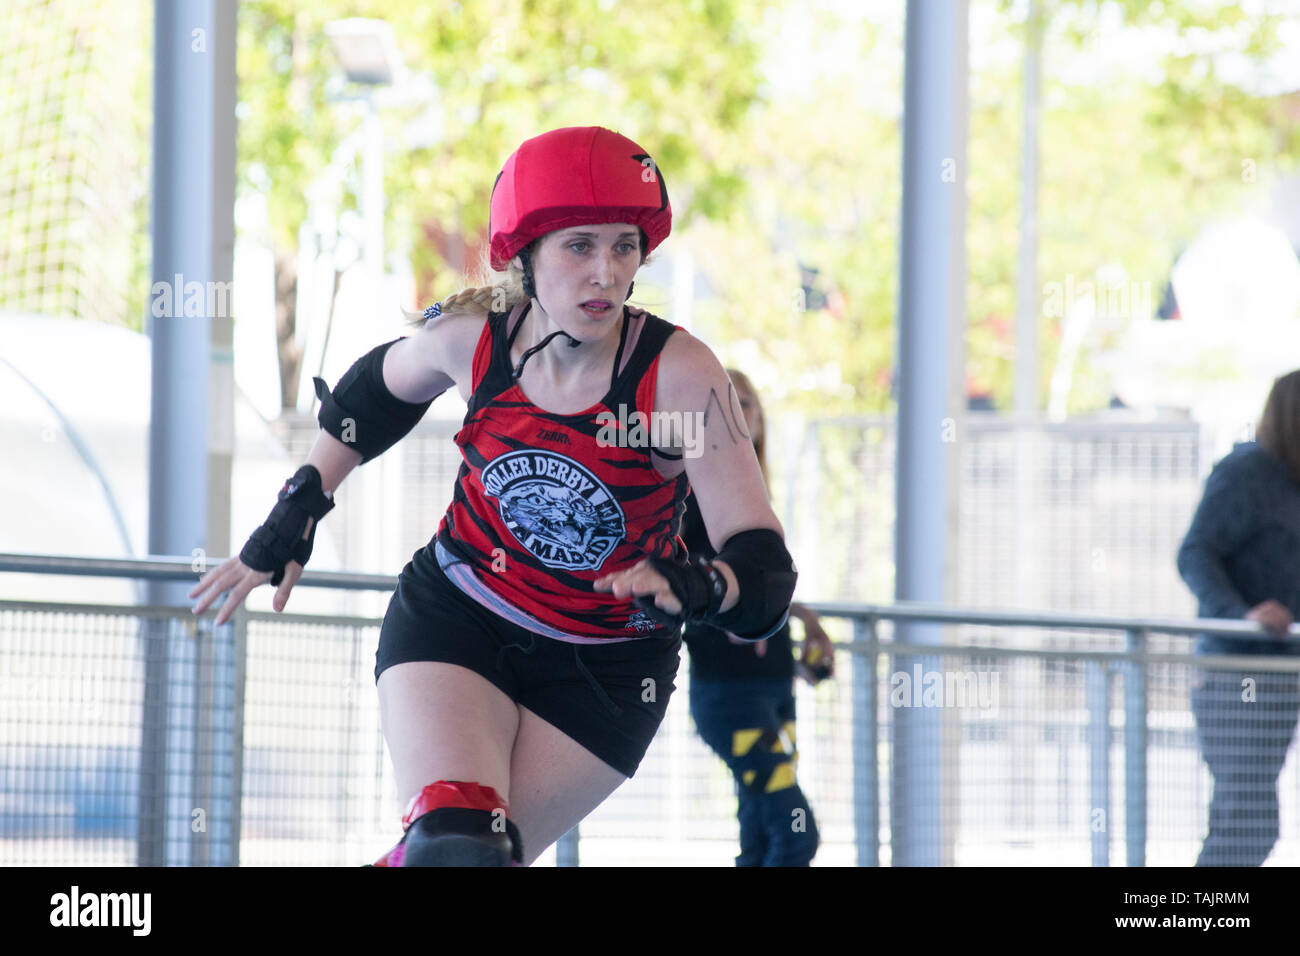 Madrid, Spain. 25th May, 2019. Jammer of Roller Dreby Madrid, #10 Feminatrix, during the game against Frankensteam. - Stock Image